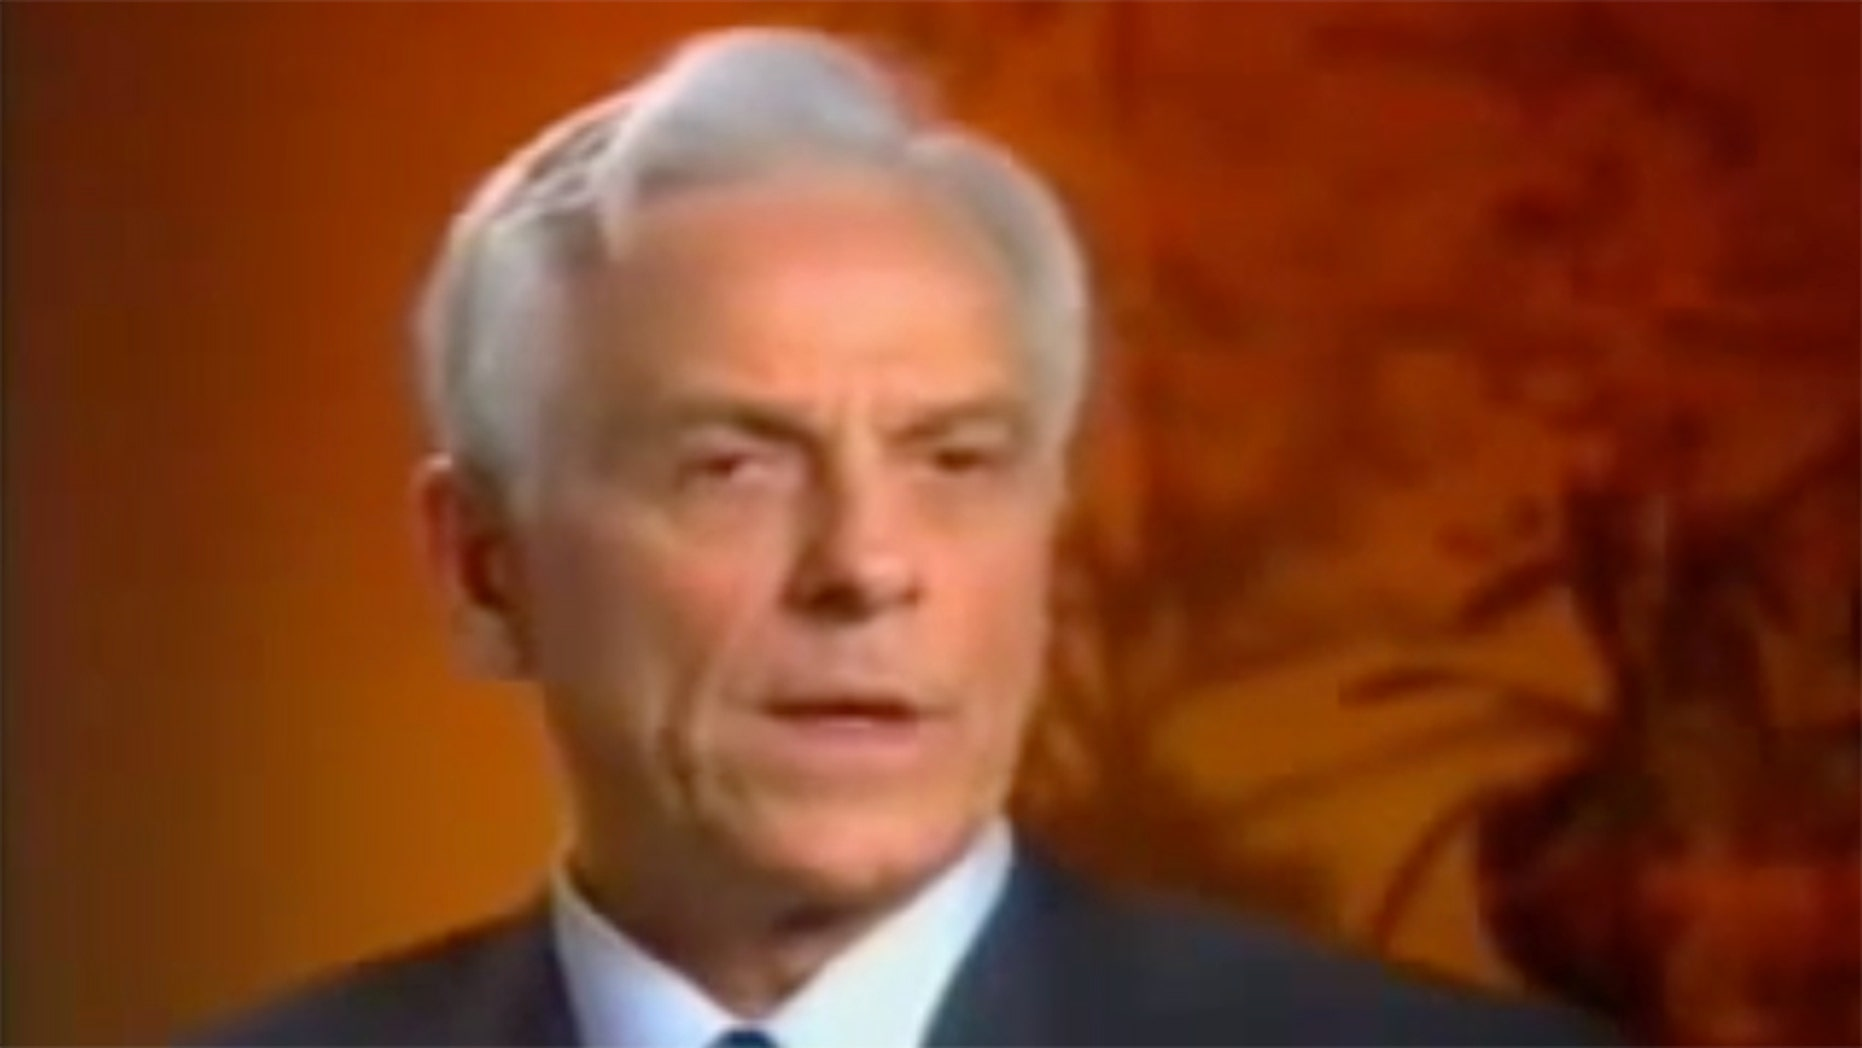 Lytle, pictured in a still taken from a video advertising his QLaser, was sentenced to 12 years in prison for fraud.